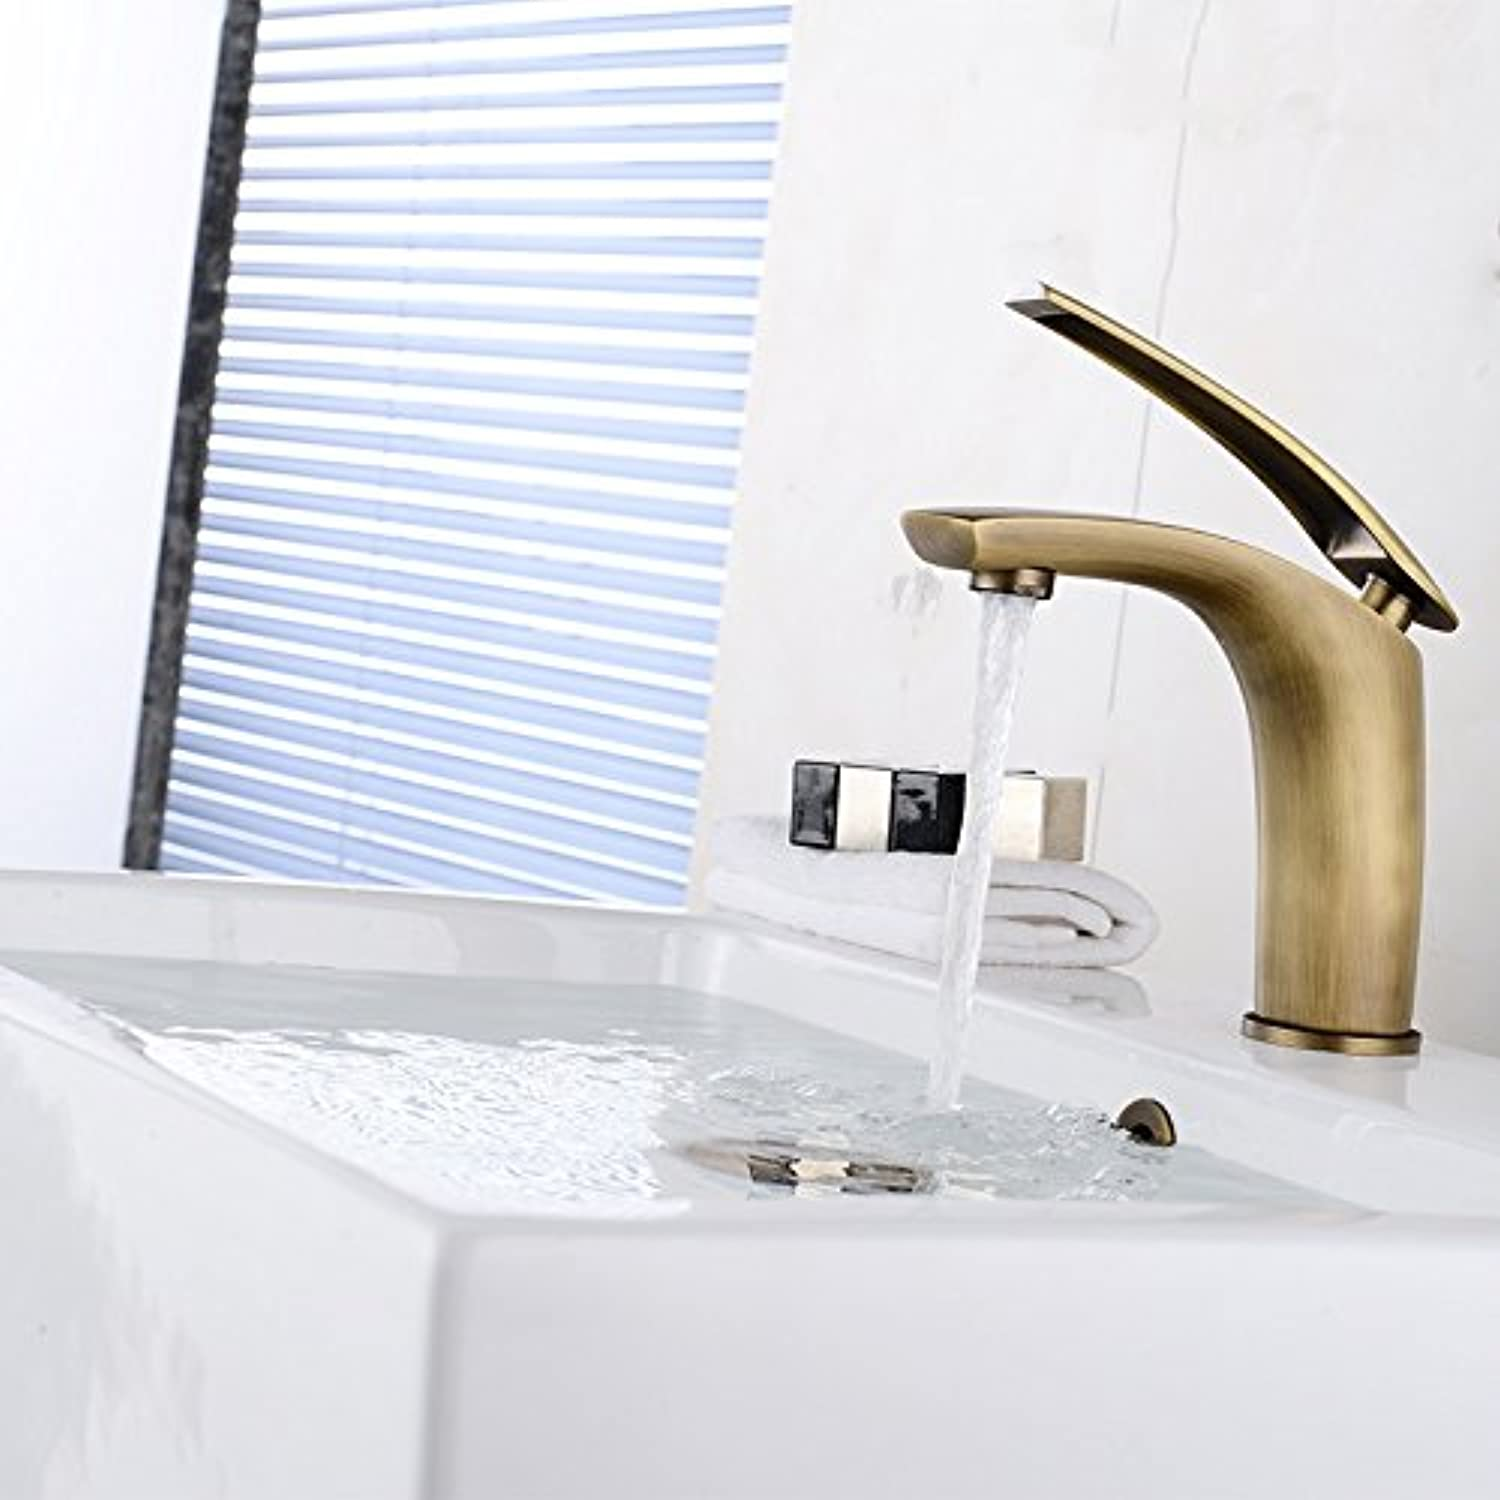 ETERNAL QUALITY Bathroom Sink Basin Tap Brass Mixer Tap Washroom Mixer Faucet The copper cold water faucet hot and cold basin antique faucet waterfall basin mixer tap wat